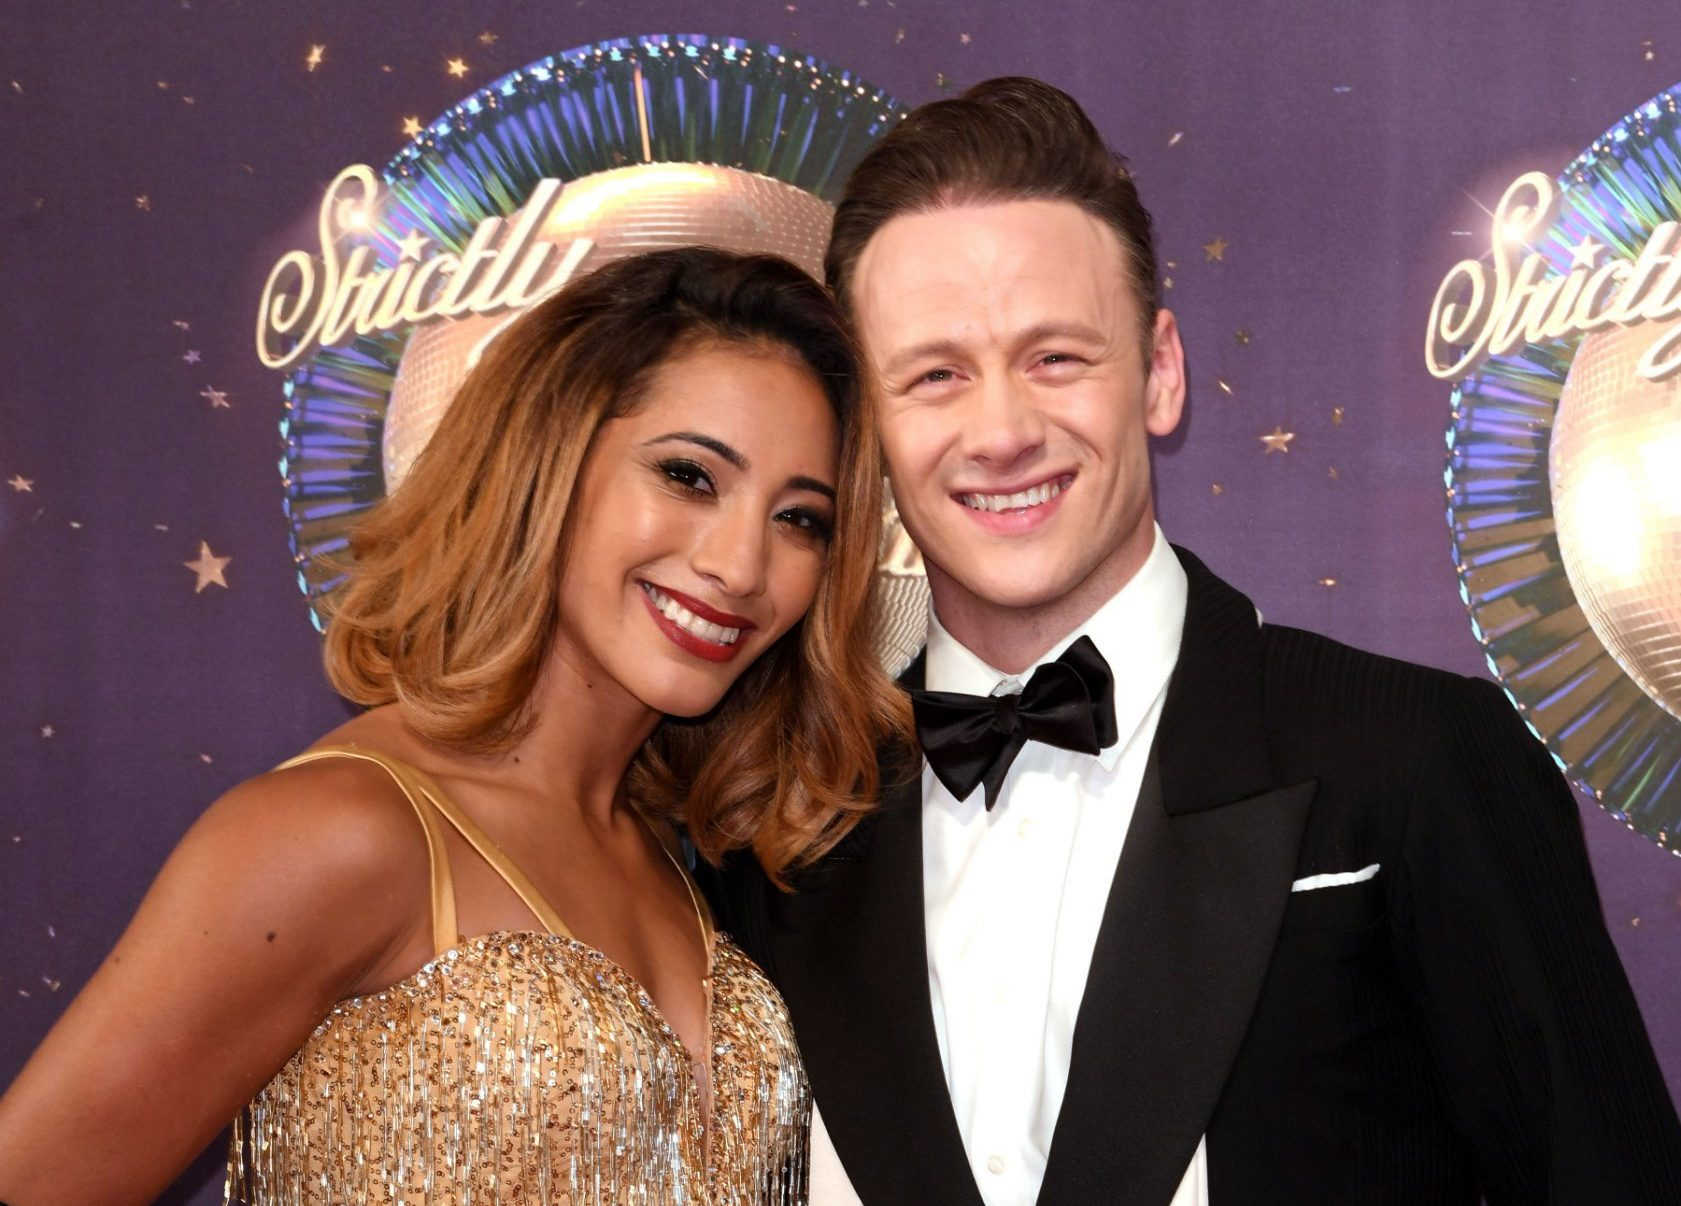 Karen Clifton still 'has a lot of love for Kevin' after split from Strictly ex